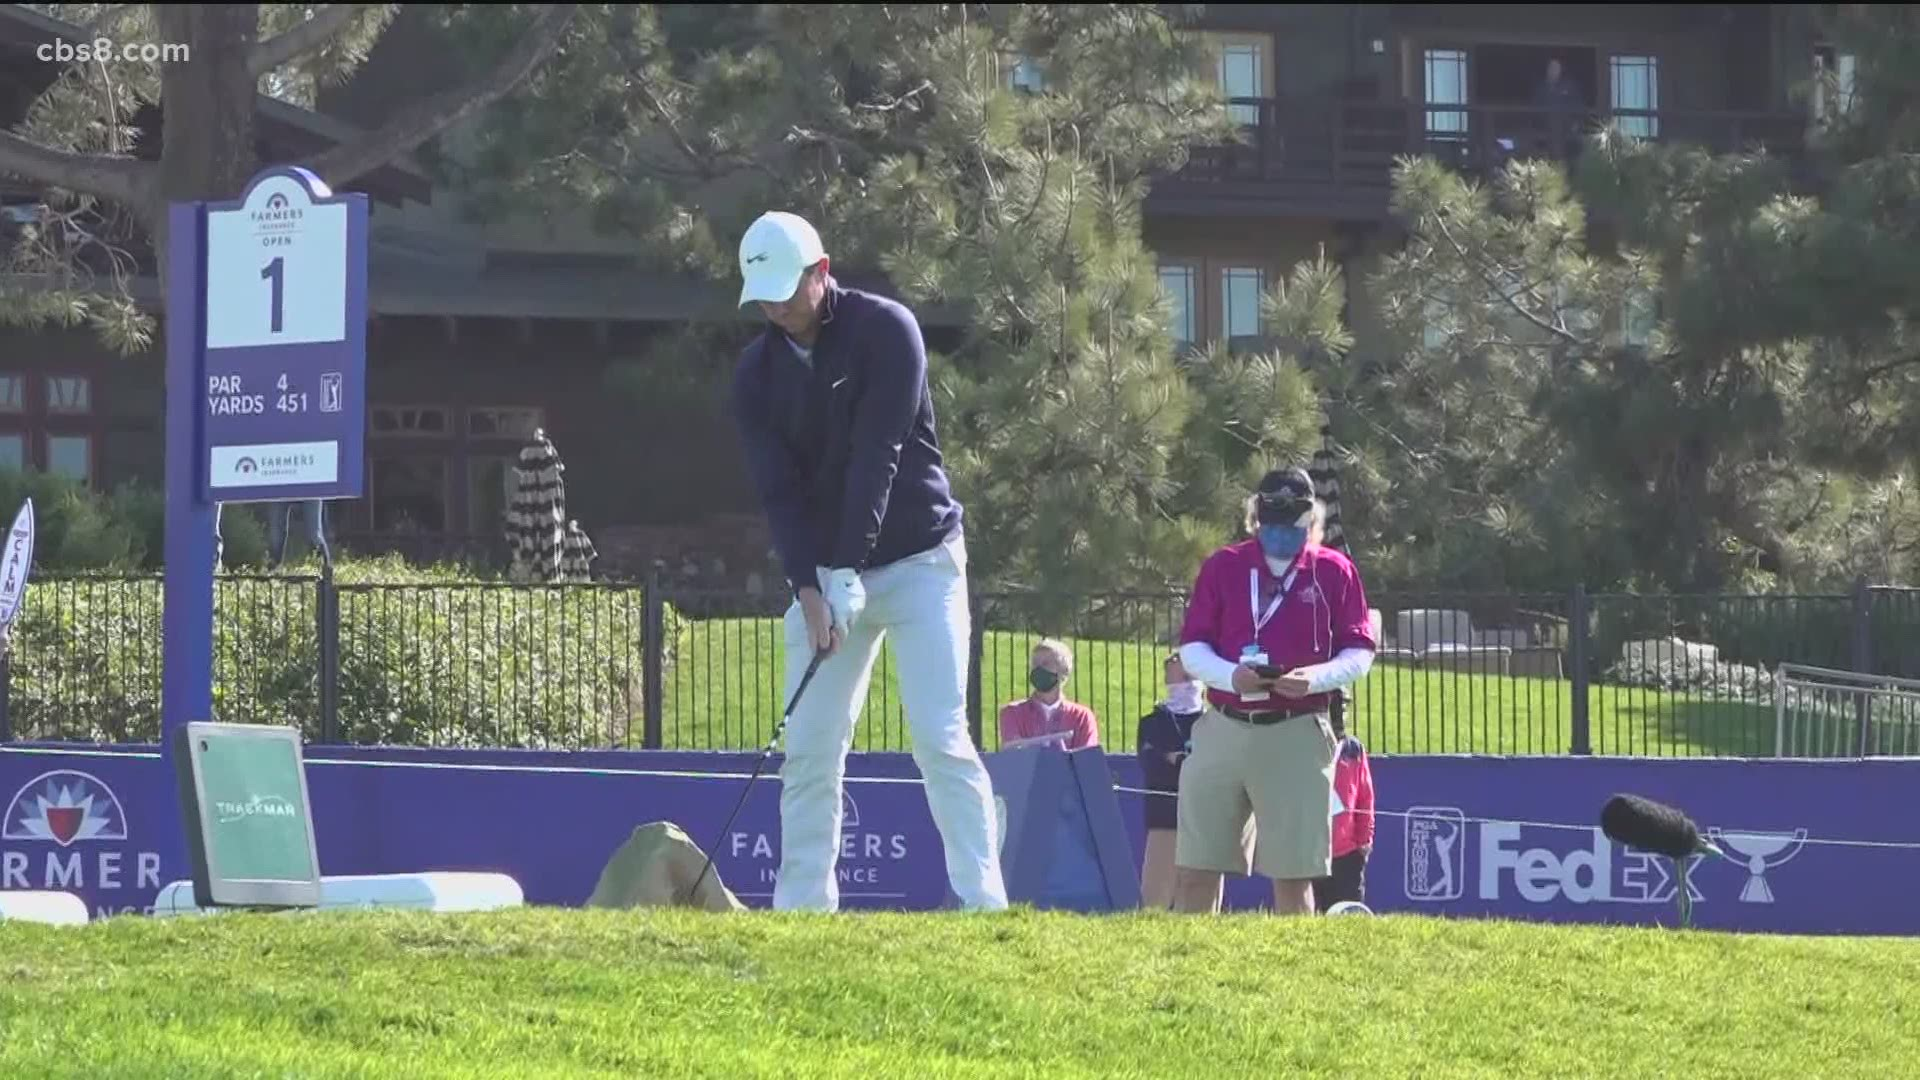 Farmers Insurance Open Begins Thursday At Torrey Pines Without Fans Cbs8 Com